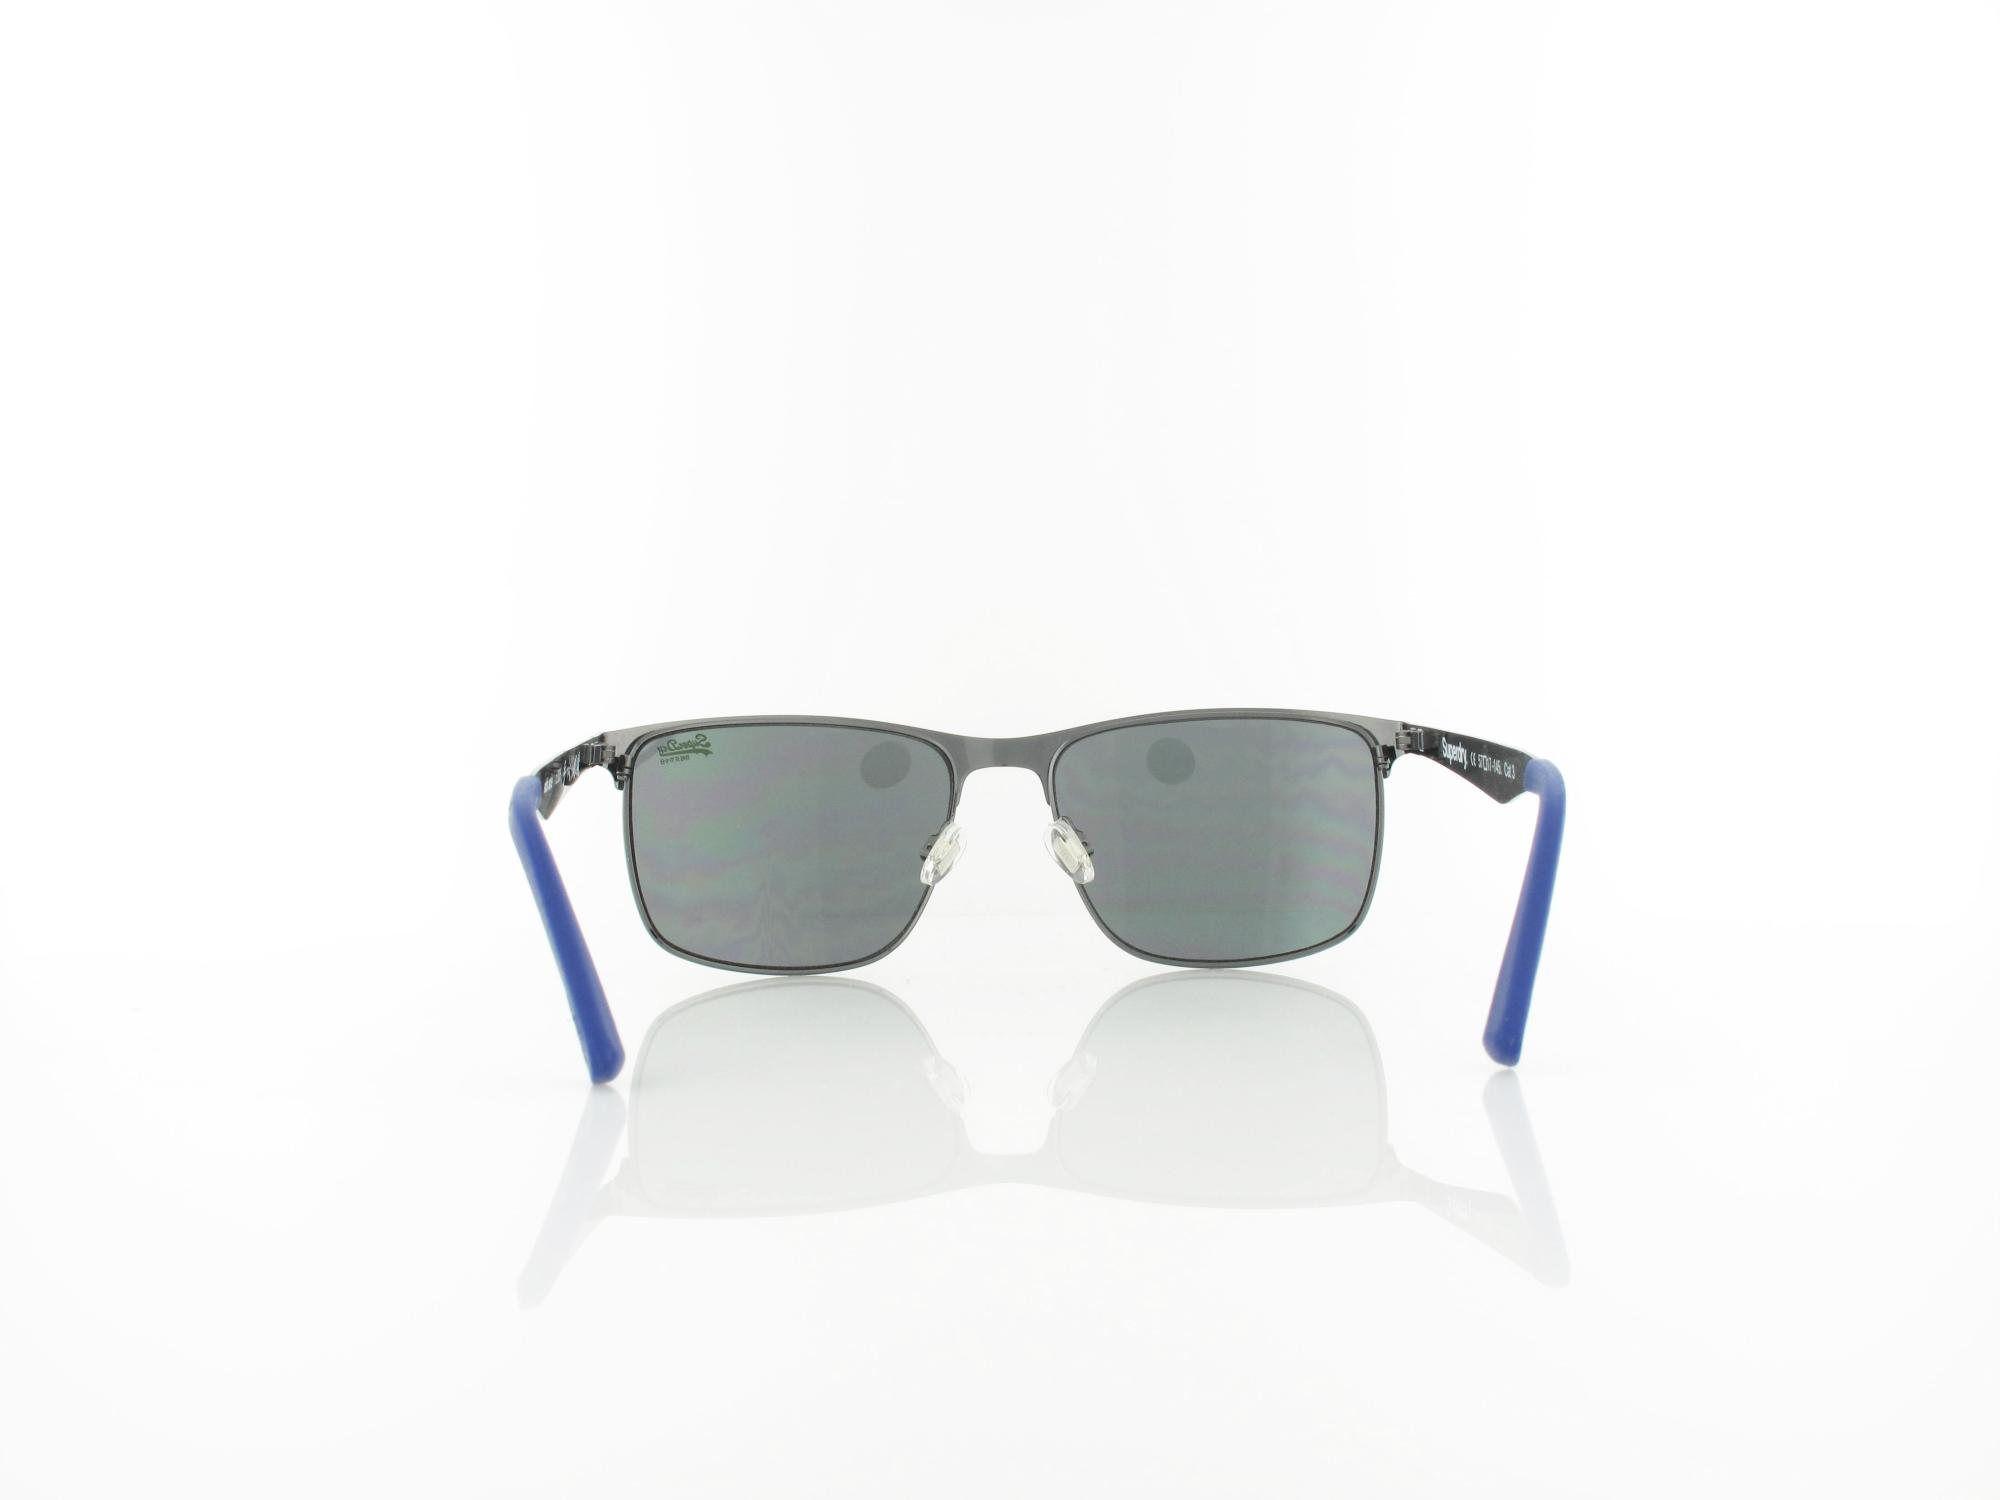 Superdry | Ace 005 57 | shiny gun navy / solid smoke with silver flash mirror